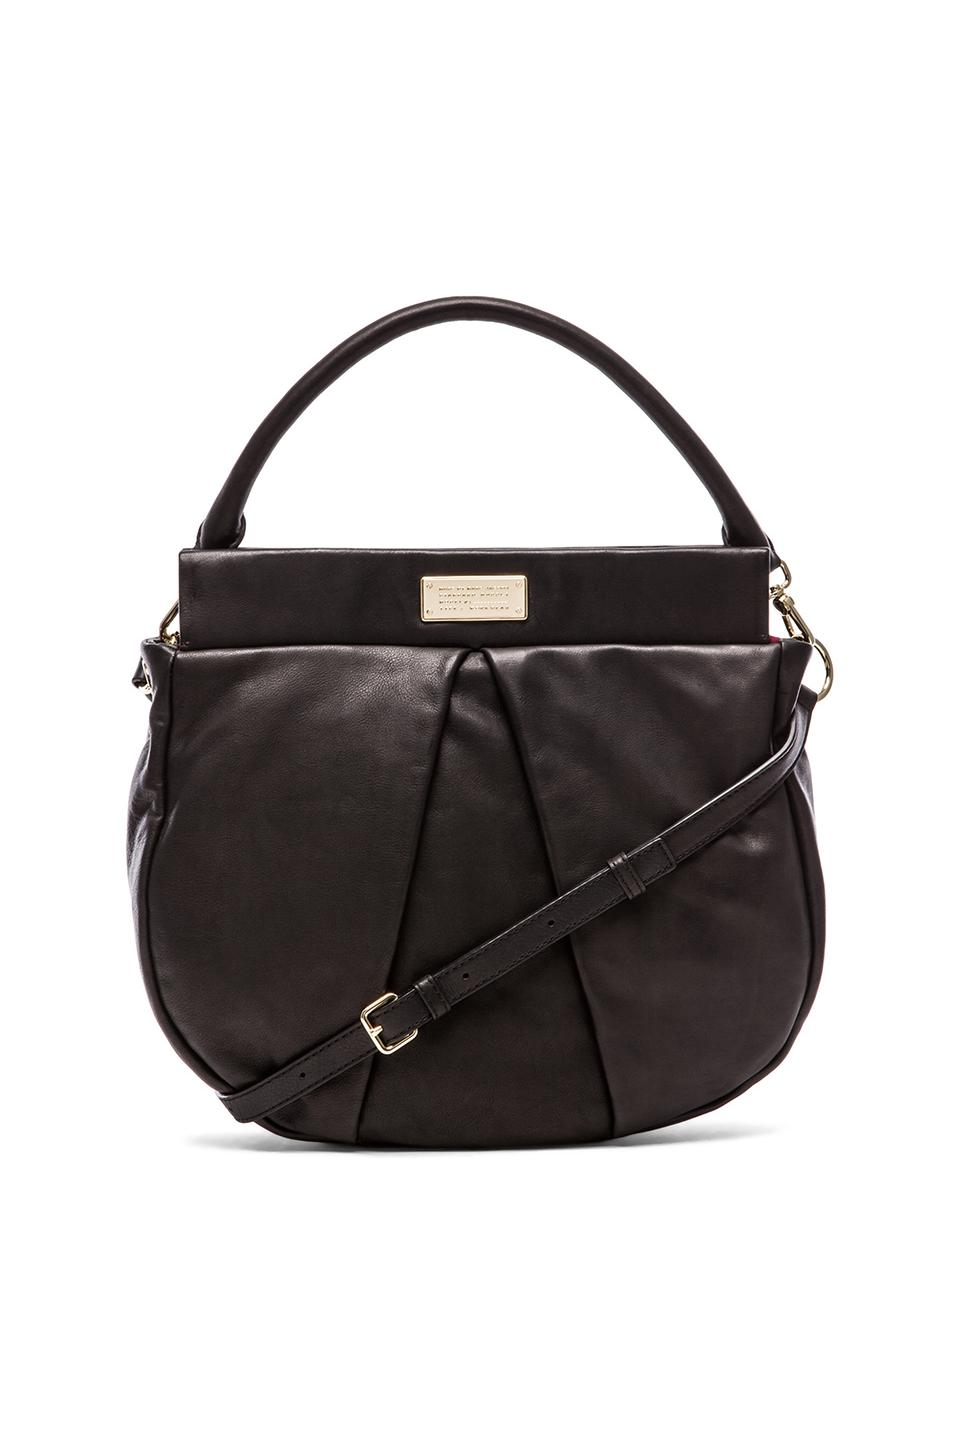 Marc by Marc Jacobs Marchive Hilli Hobo in Black